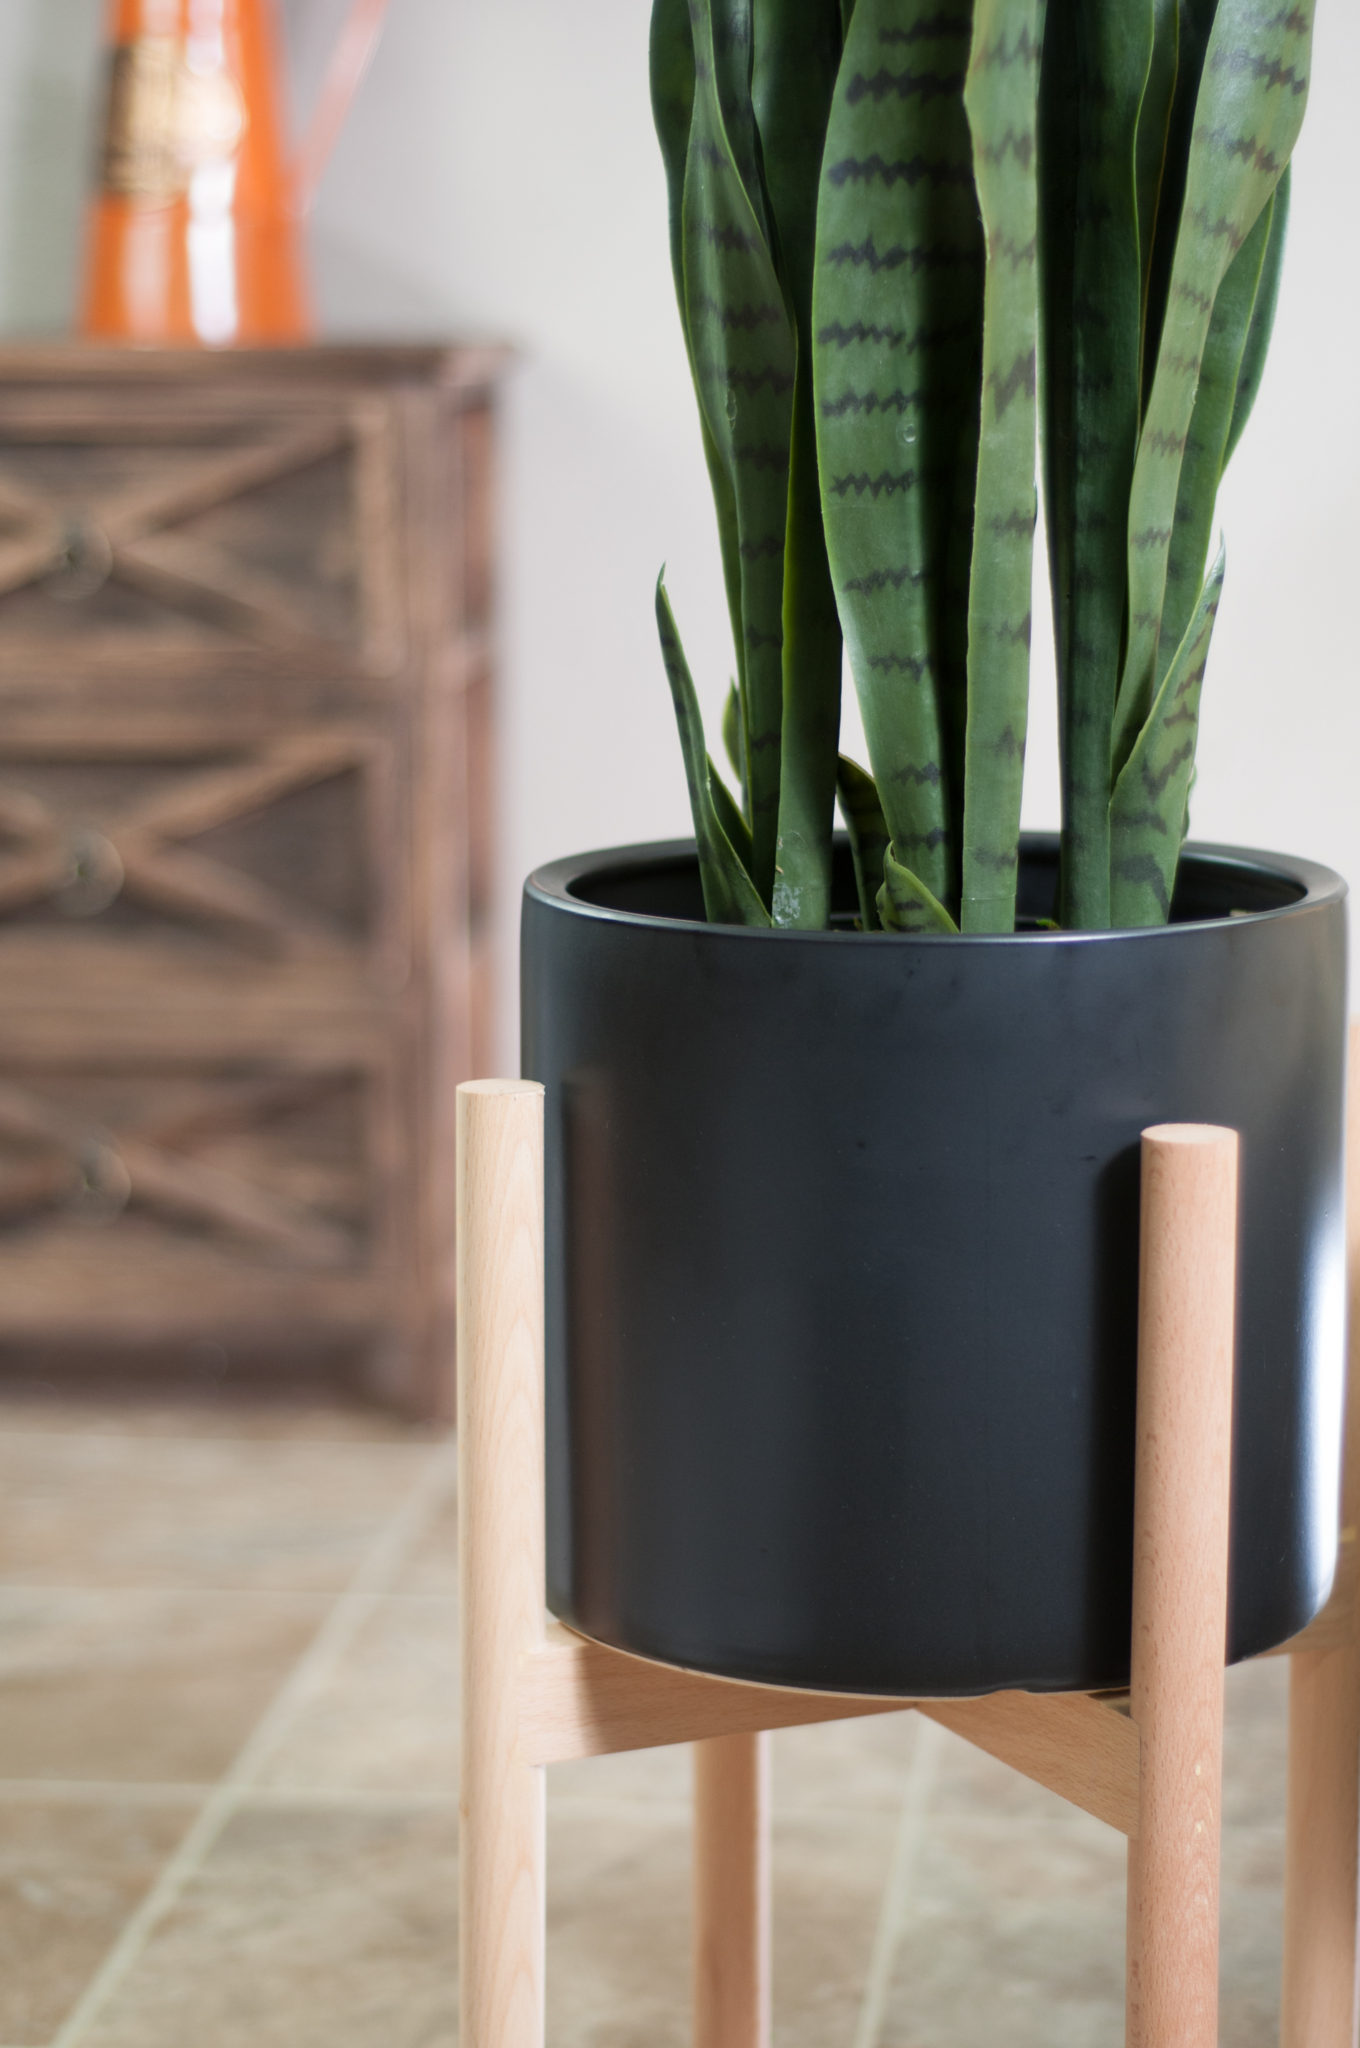 Upshining Ceramic Pots With Wood Stand Large Black Ceramic